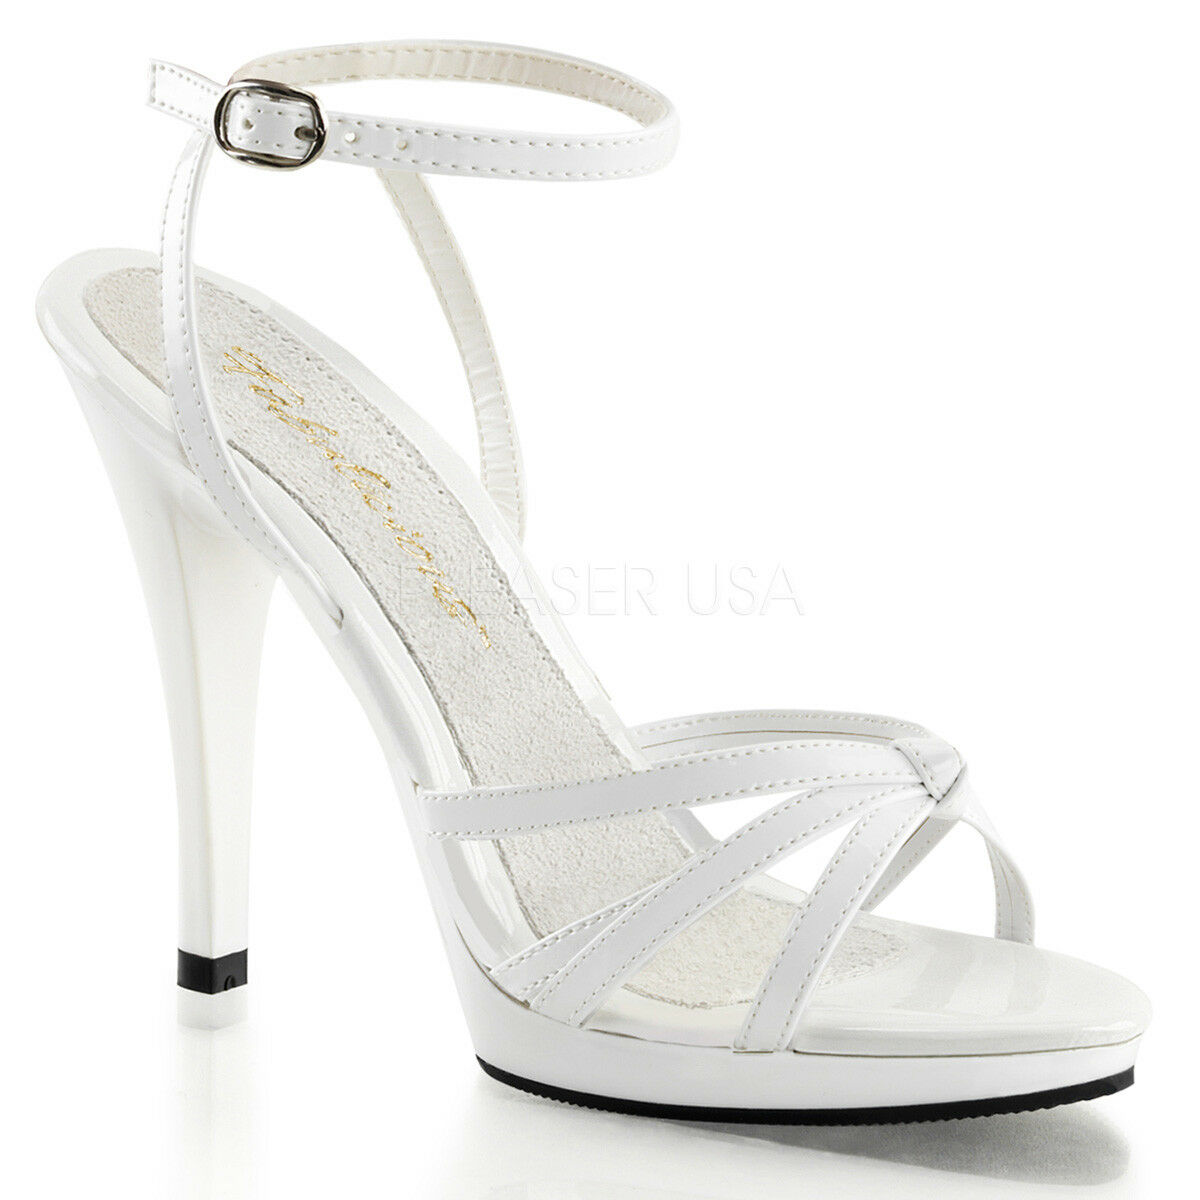 PLEASER FABULICIOUS FLAIR-436 WHITE PATENT PATENT PATENT PLATFORM STILETTO HEEL SANDALS 995f4c